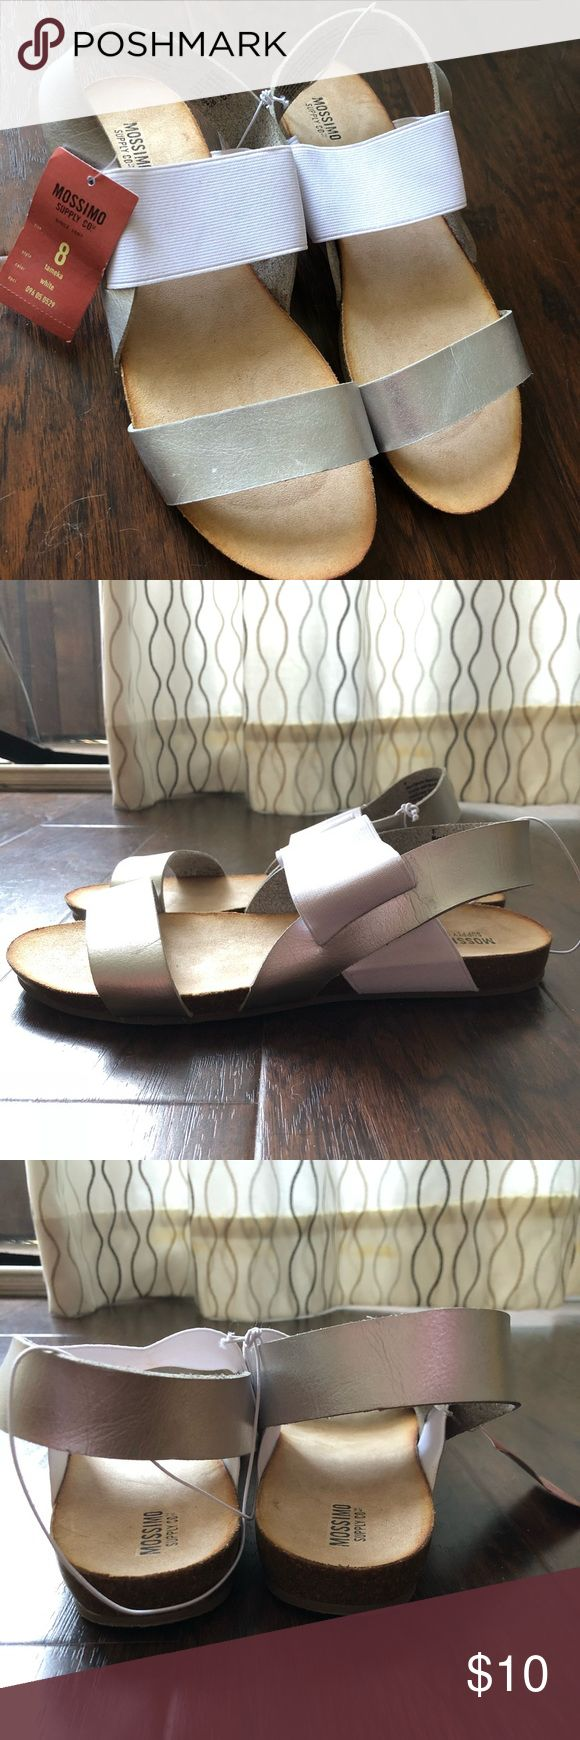 Mossino Supply Co white/silver flat sandals NWT Originally from Target, never worn, thick straps Mossimo Supply Co Shoes Sandals